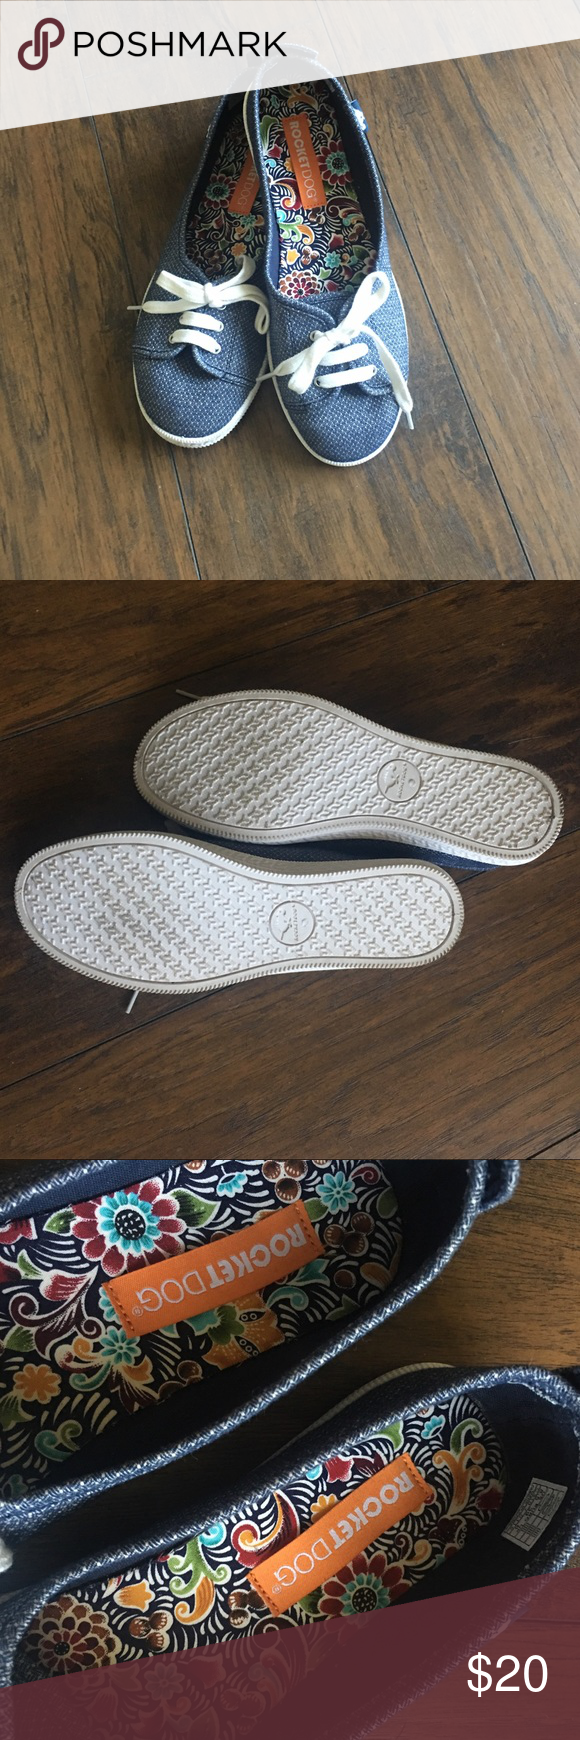 EUC Rocketdog sneaker flats Sz 8.5 Super adorable sneaker flats by RocketDog in women's size 8.5. Minimal signs of wear, cute Denim inspired fabric with mini lace-u detail perfect for springThanks for looking  make me an offer! Rocket Dog Shoes Flats & Loafers